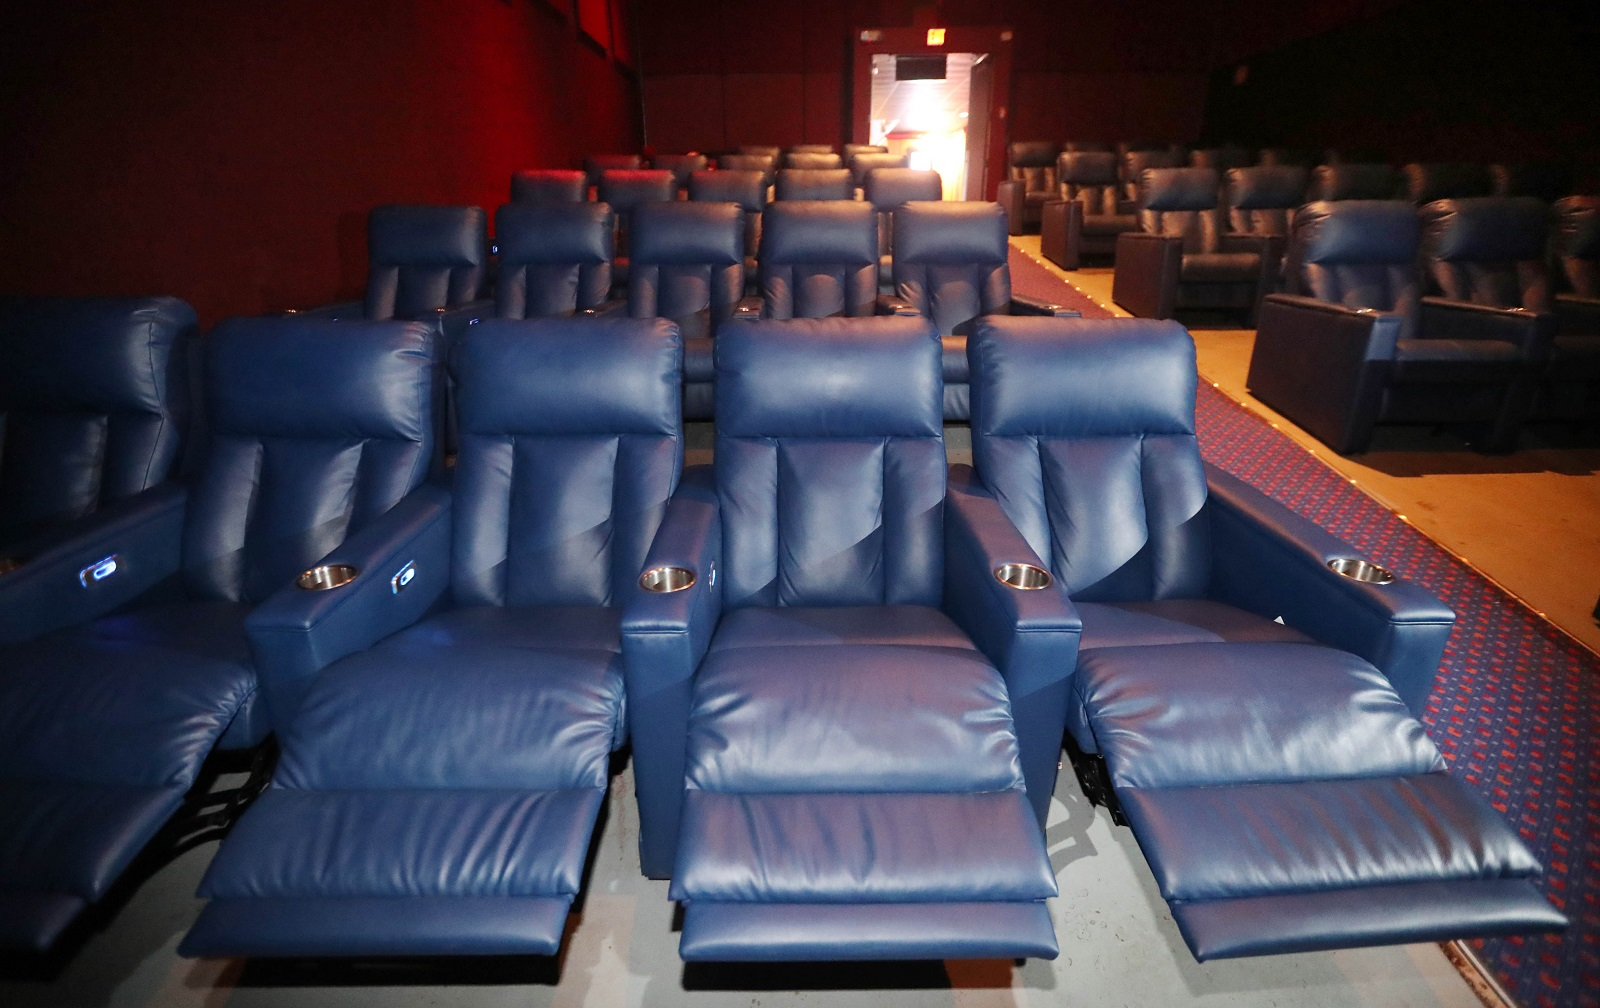 Guide movie theater